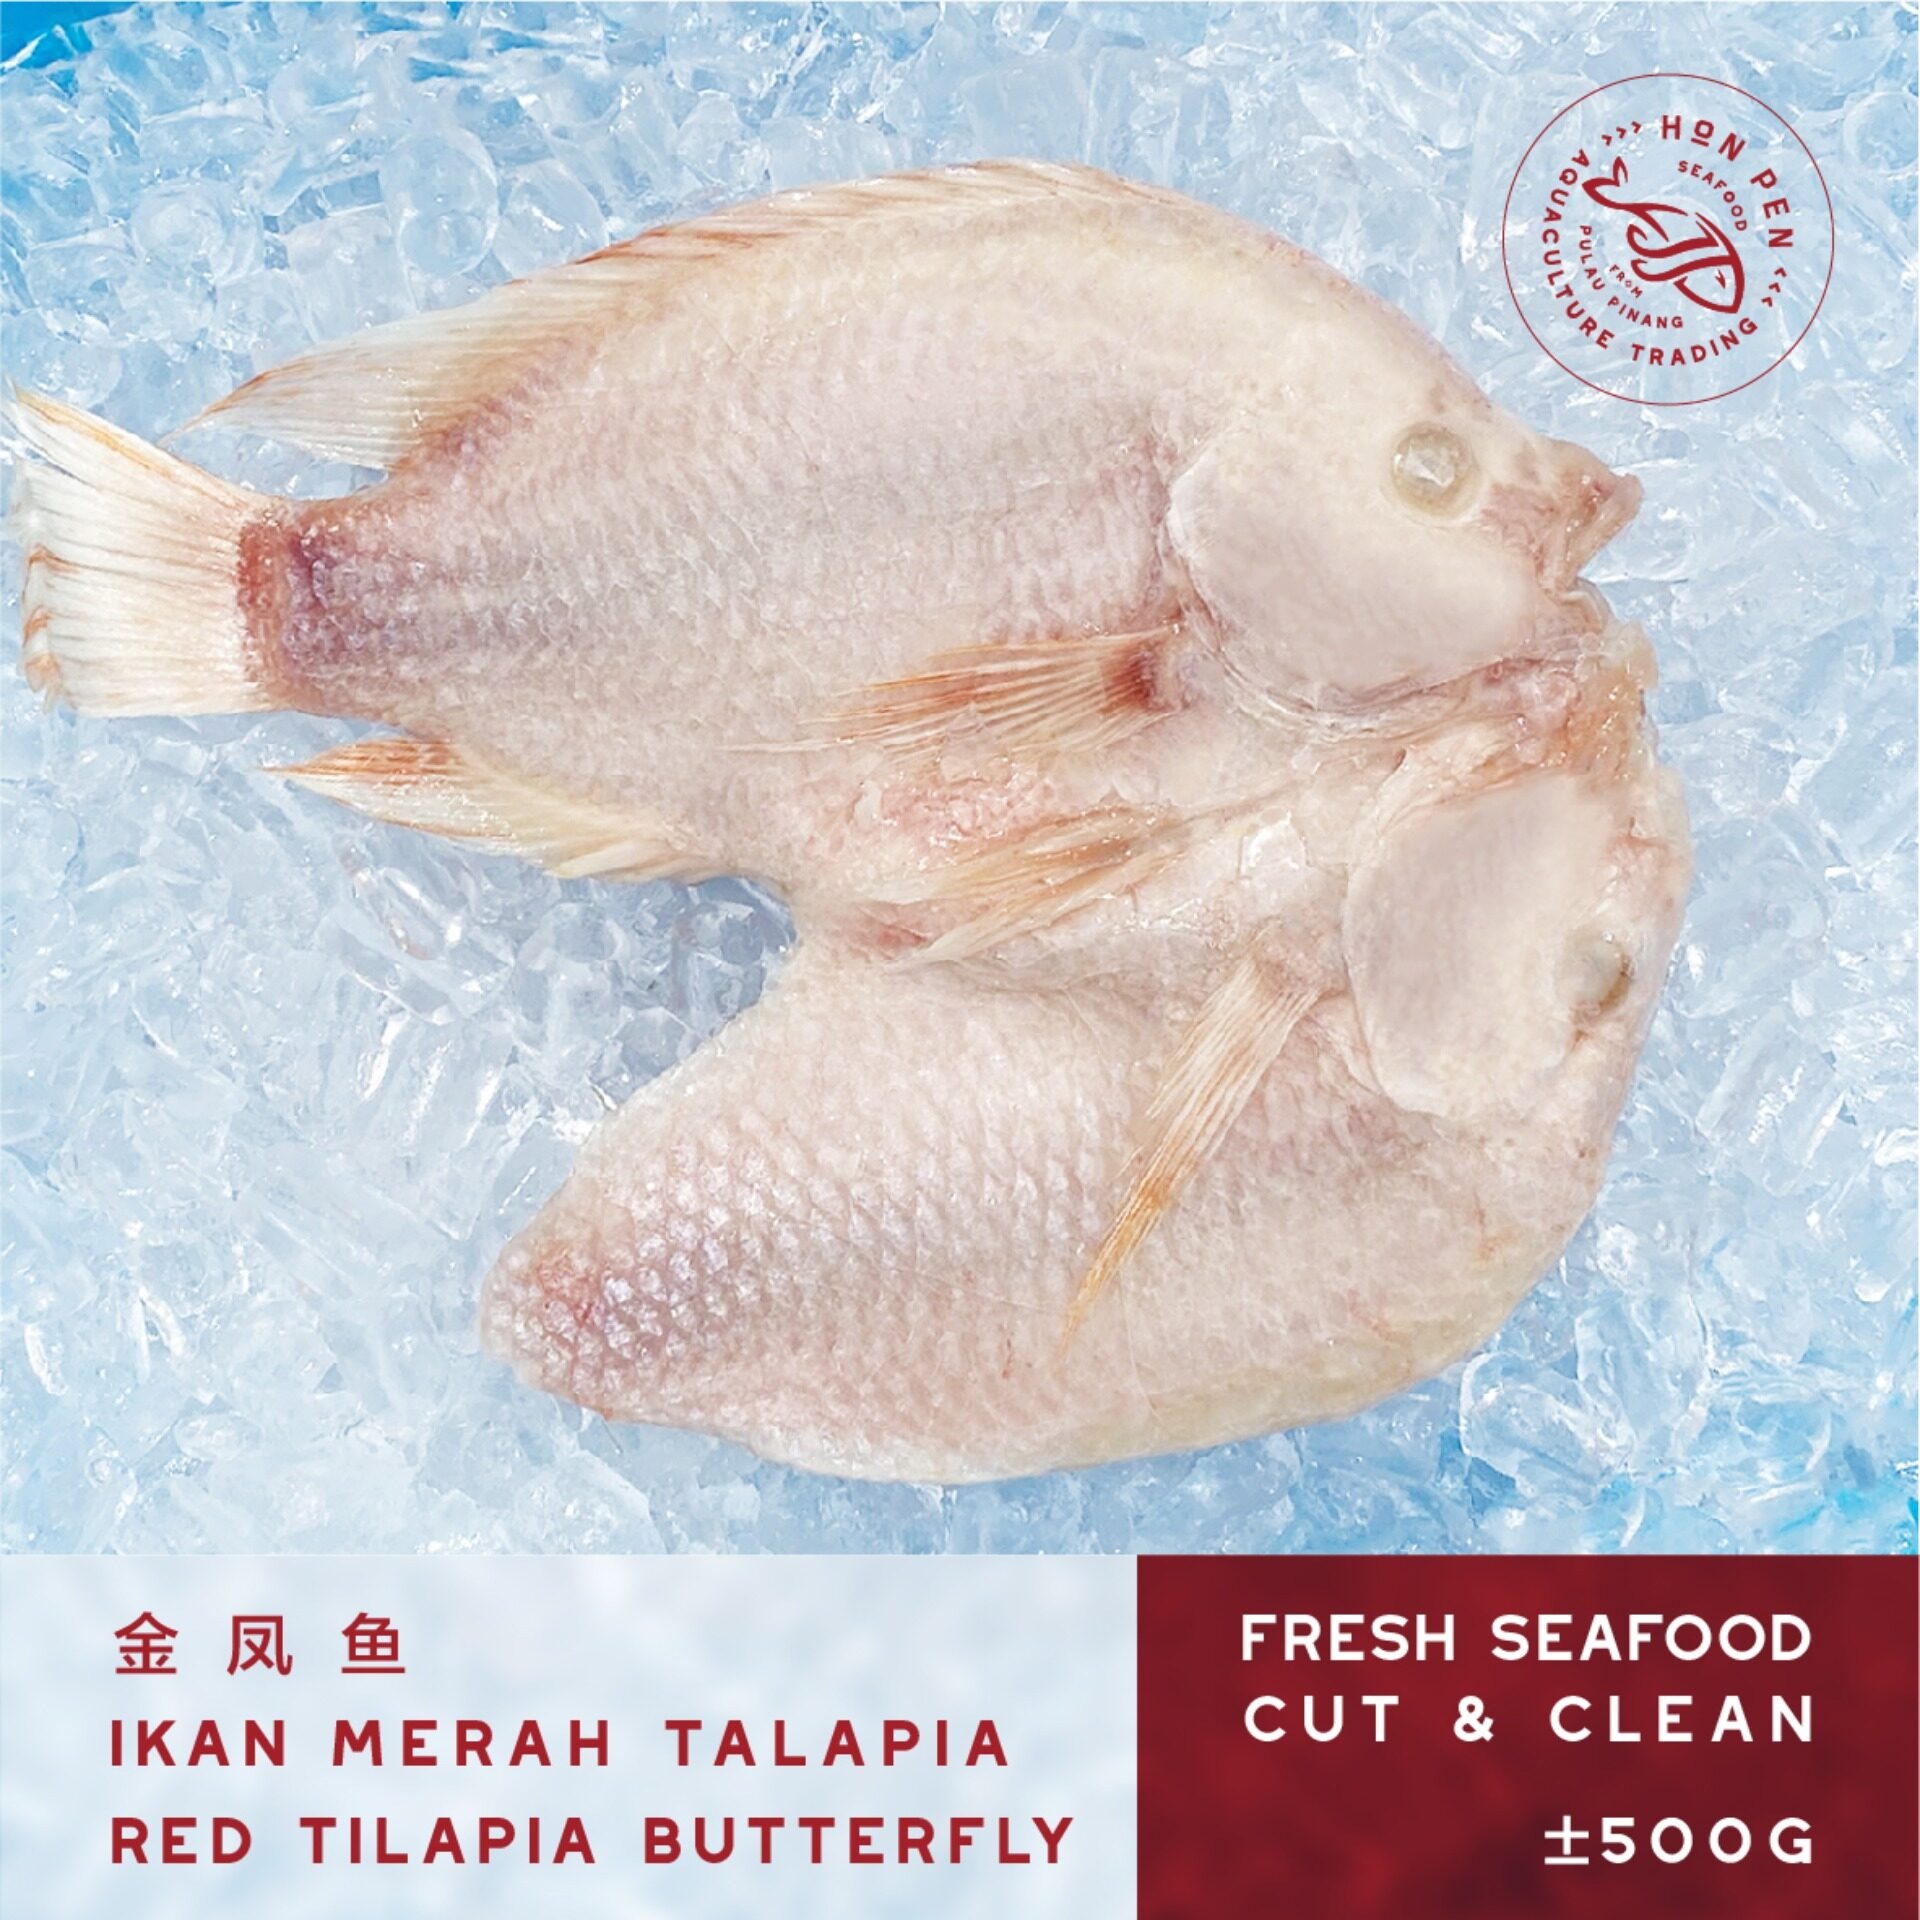 3pcs RED TILAPIA BUTTERFLY 金凤鱼 IKAN MERAH TALAPIA (Seafood) ±500g